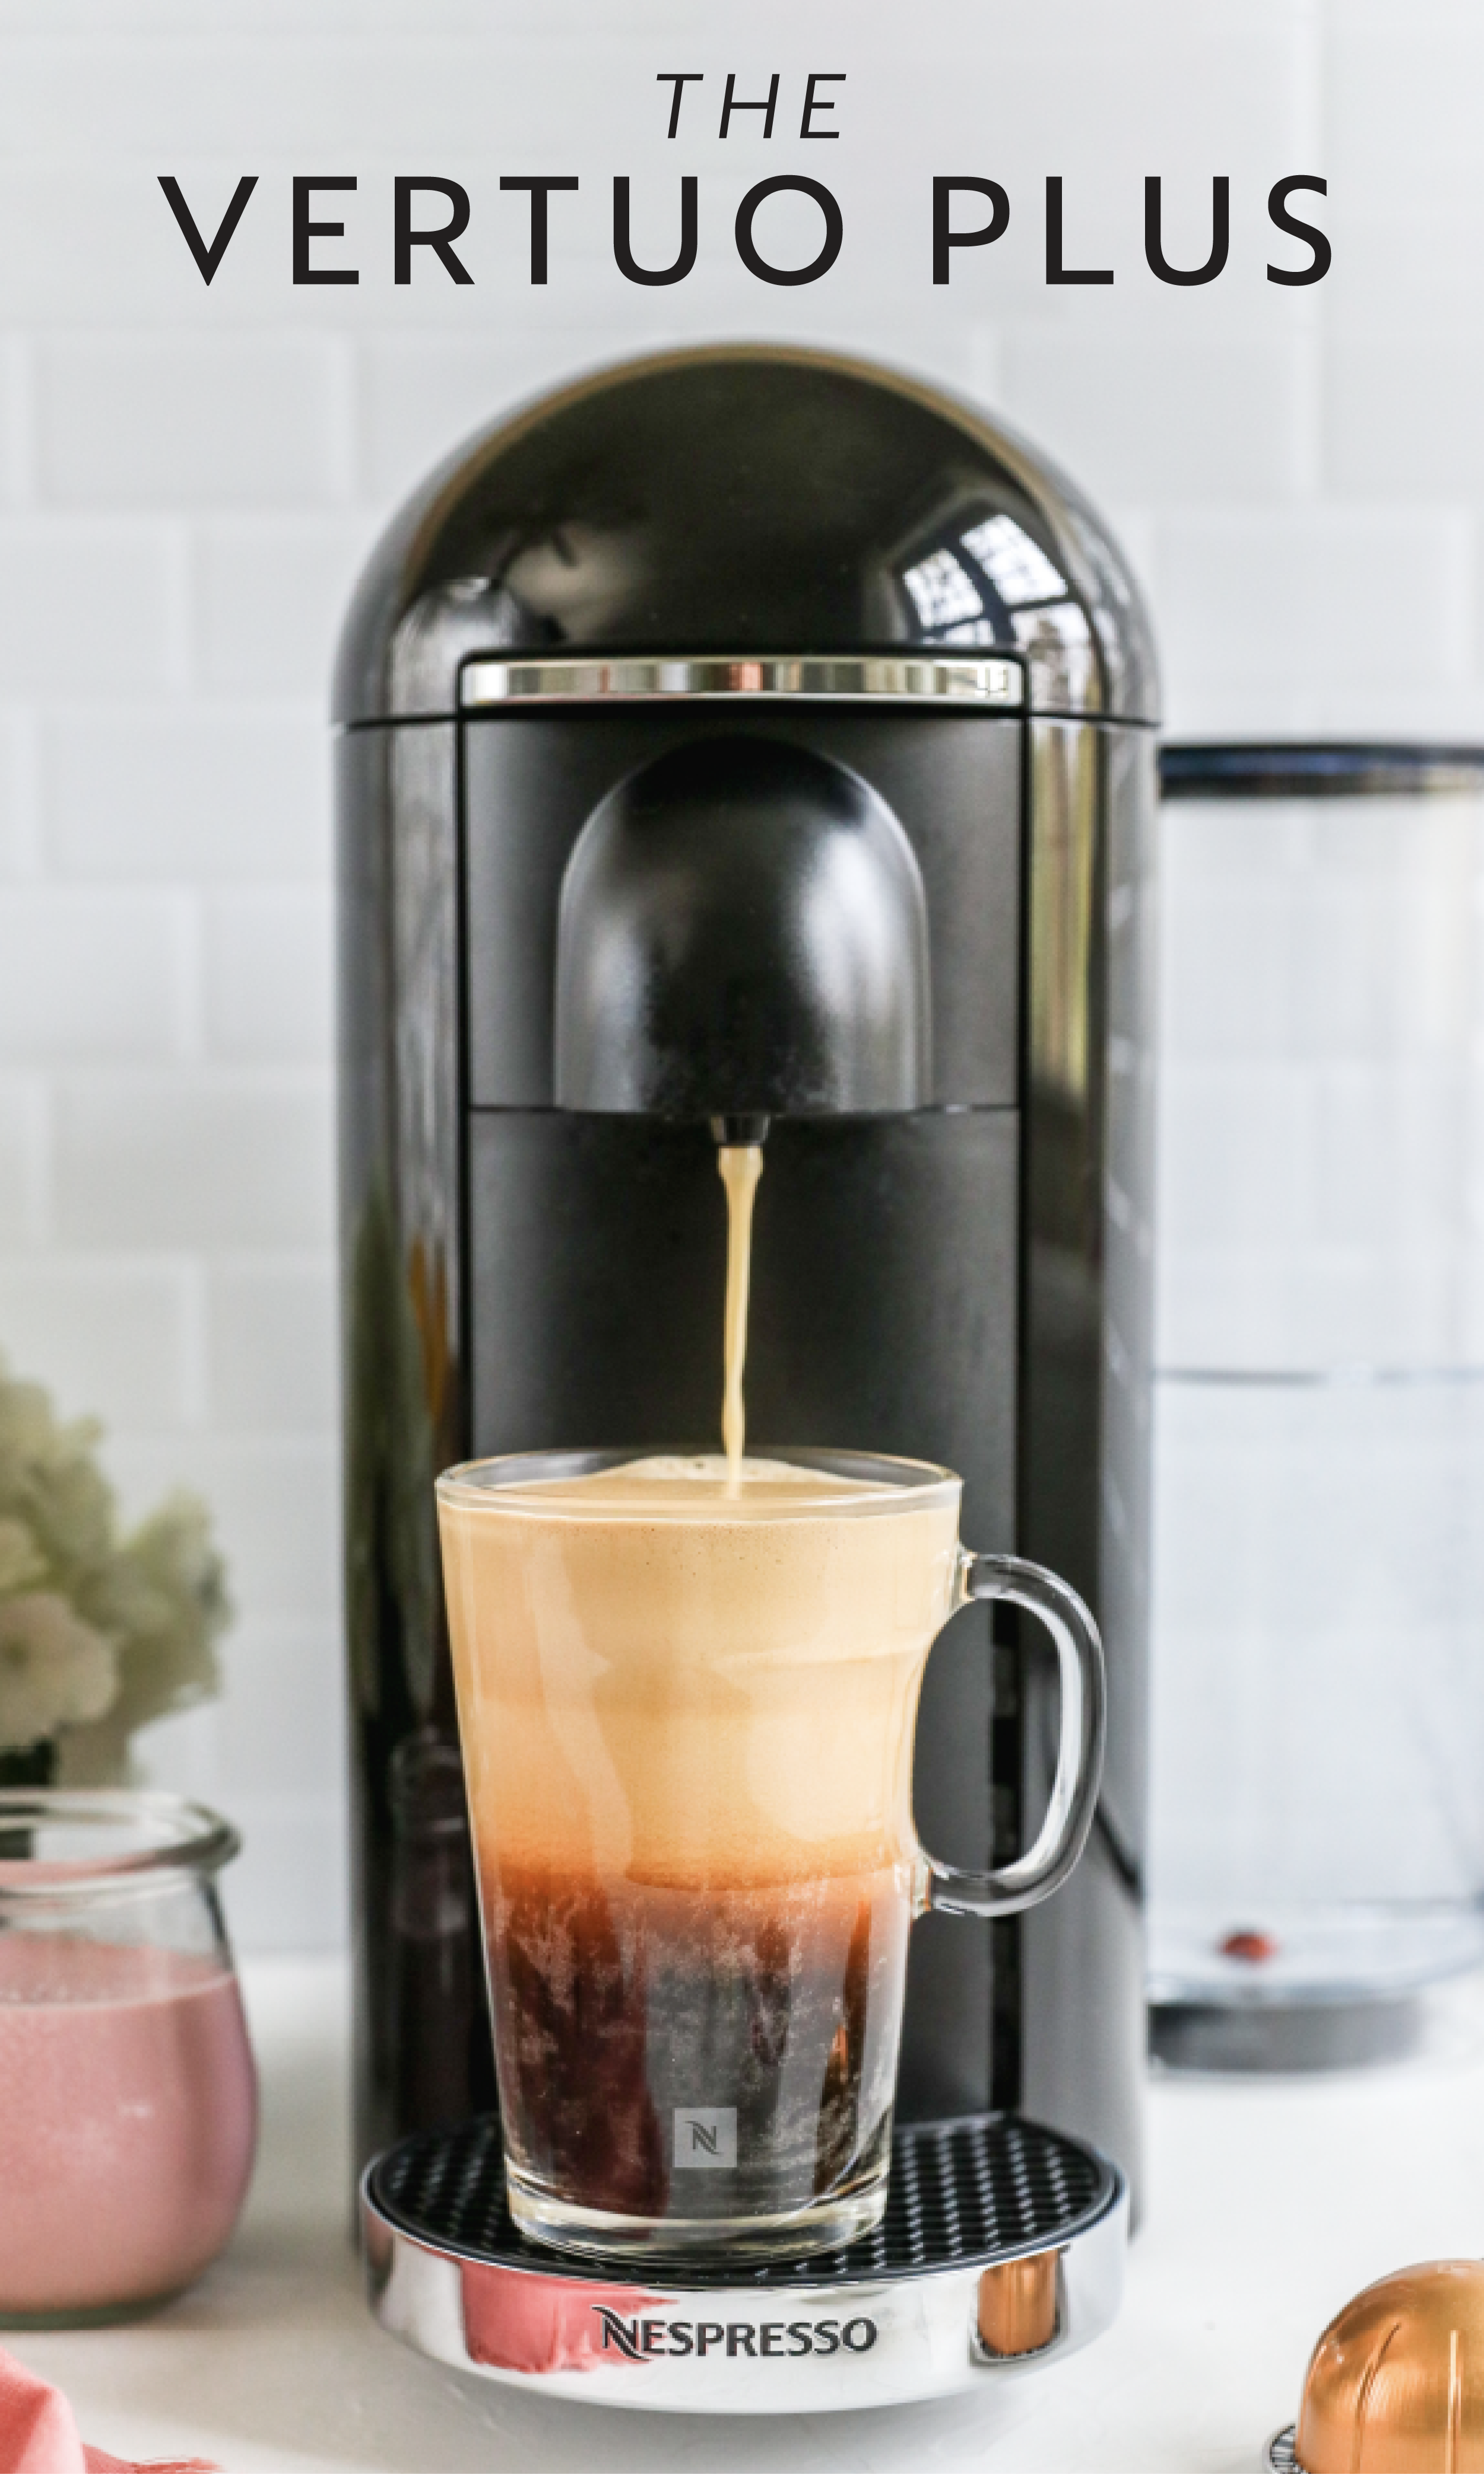 A Must Have Kitchen Accessory For Every Coffee Connoisseur The Vertuo Plus Coffee Machine Allows You To Create De Nespresso Percolator Coffee Buy Coffee Beans